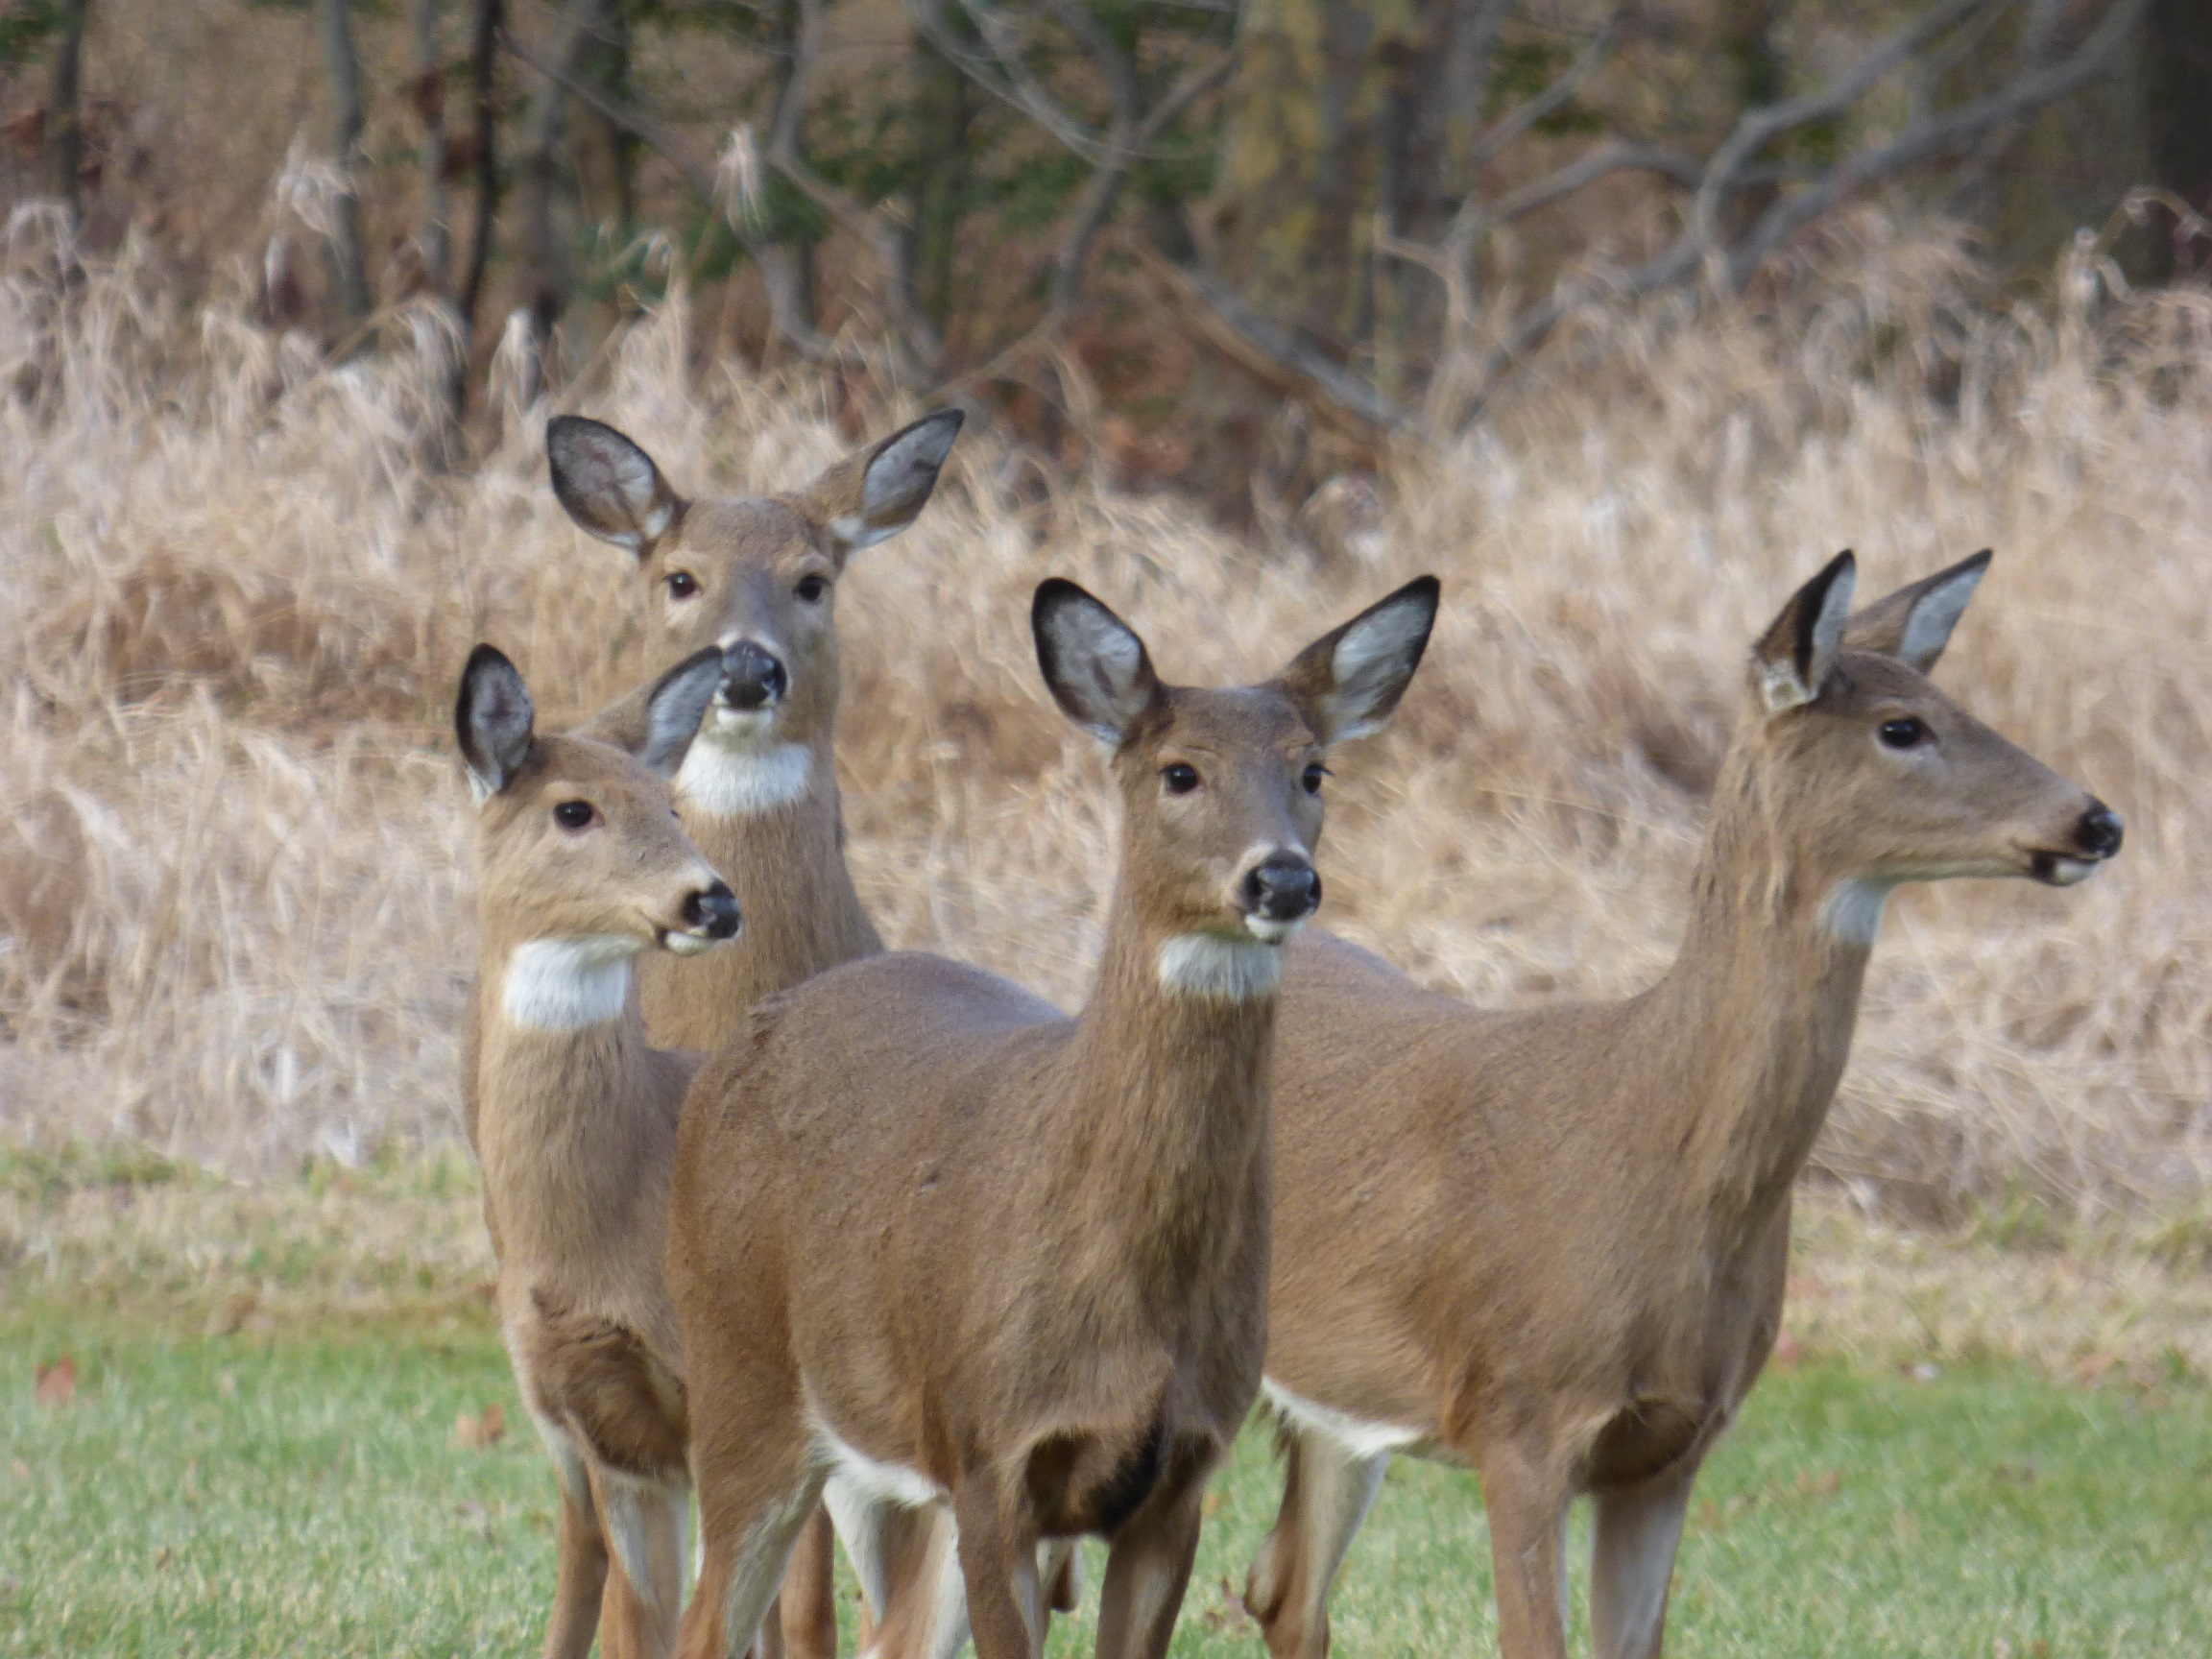 Four deer. Photo by John Fosbenner